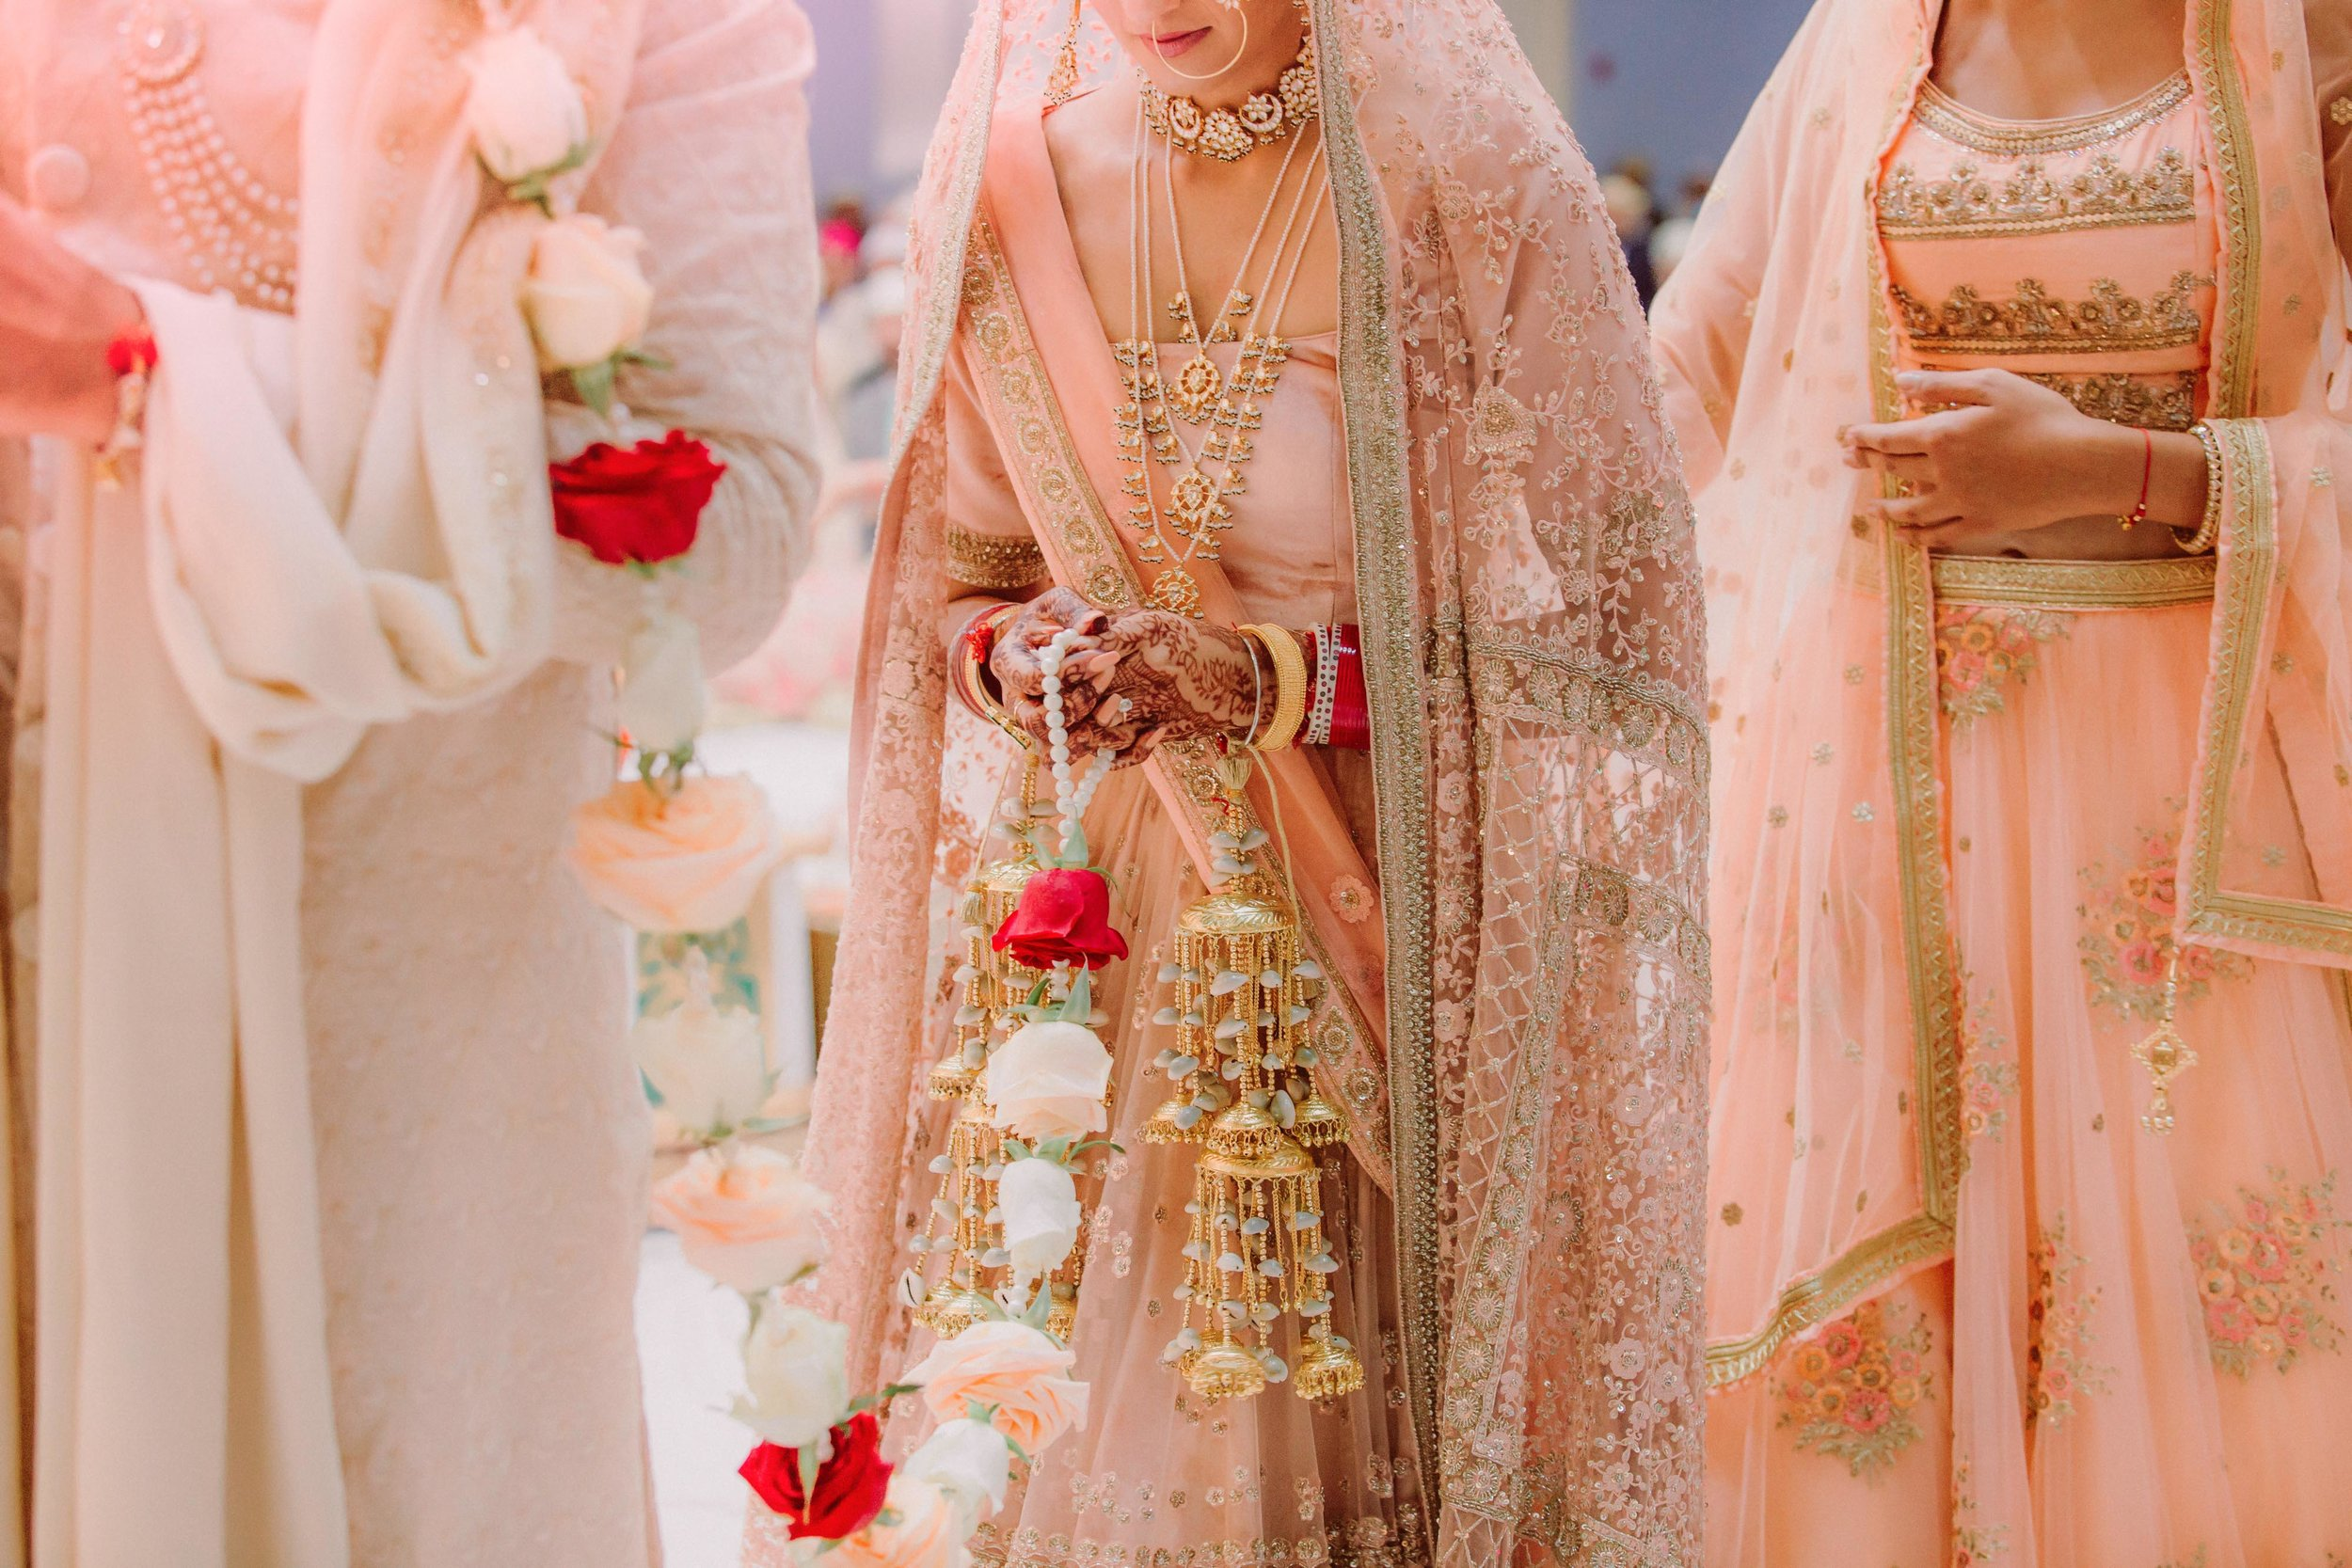 Jannat wedding sabyasachi mannat's mode